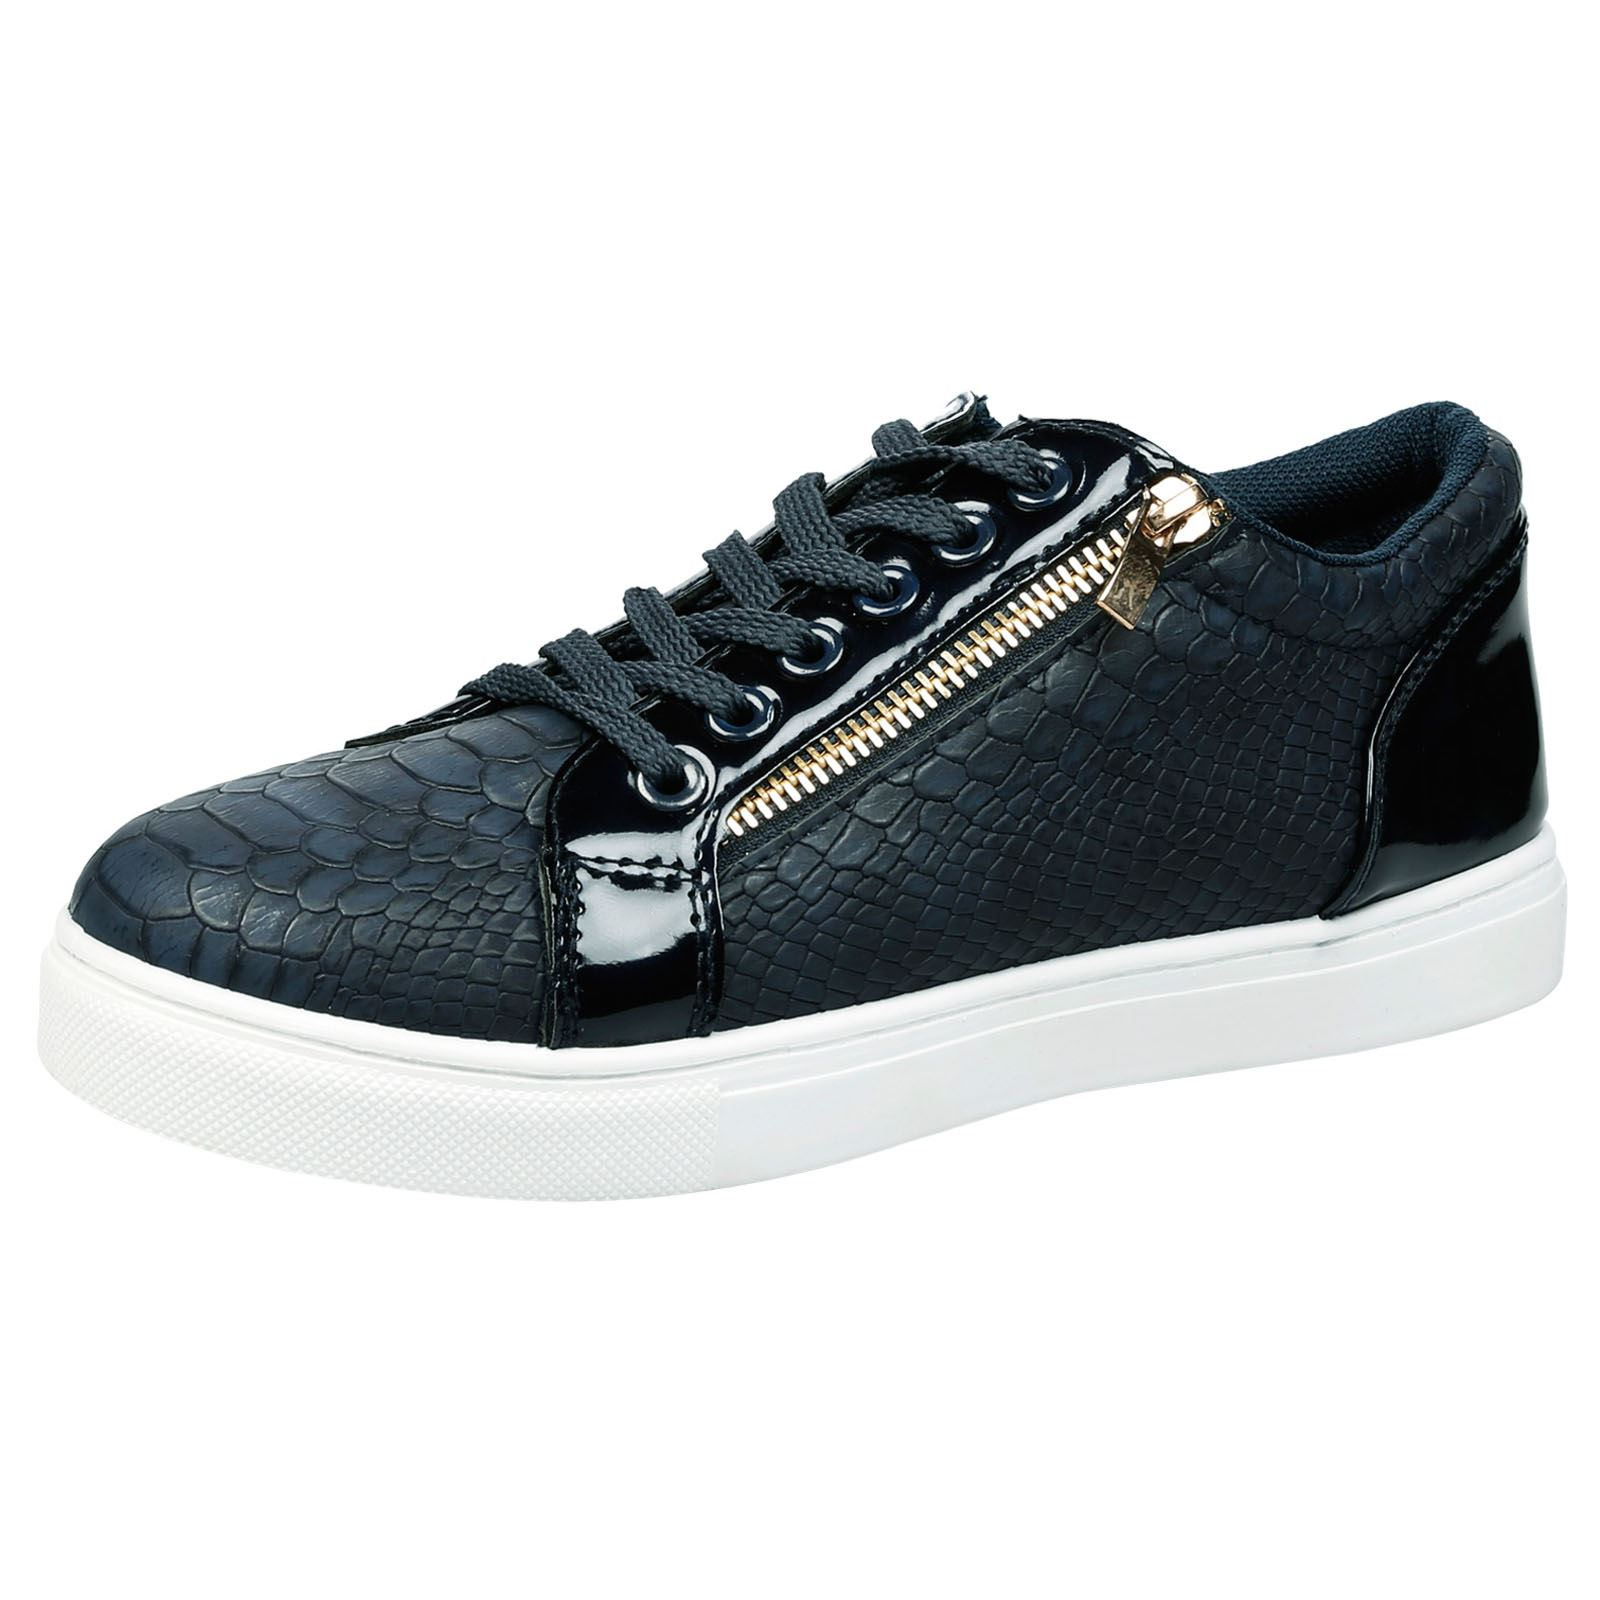 WOMENS SHOES LADIES TRAINERS PUMPS PLIMSOLLS LACE UP FLATS LADIES STYLE SIZE NEW